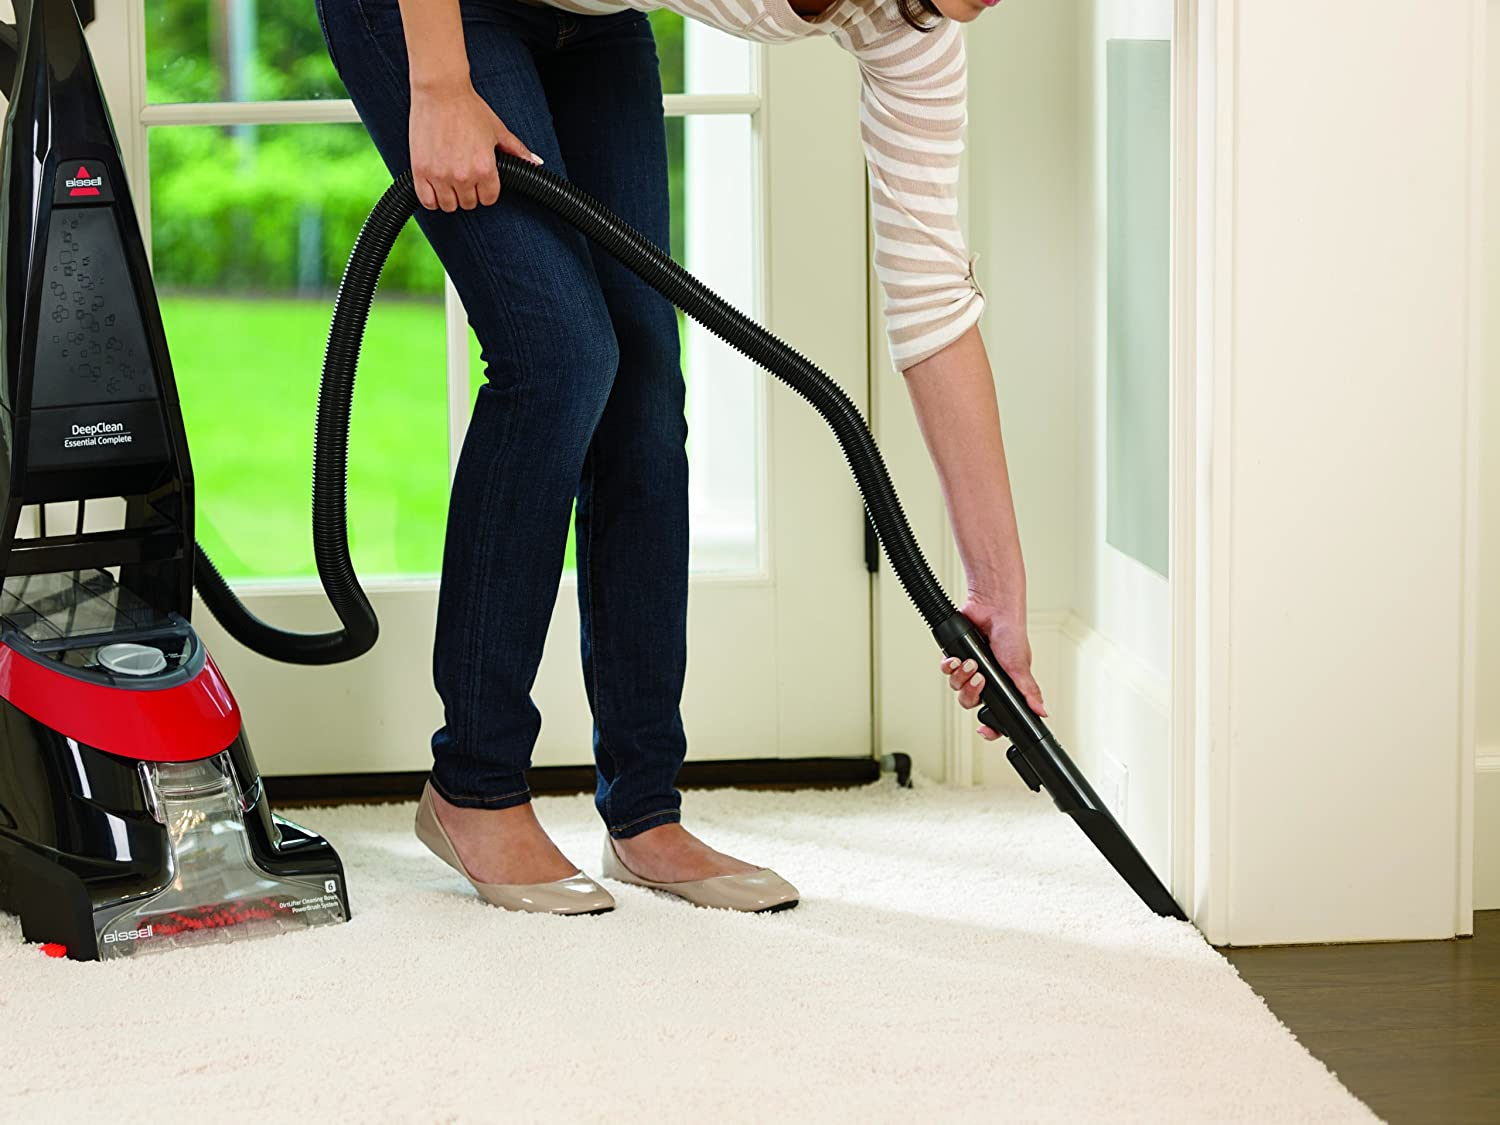 Carpet cleaner vacuum